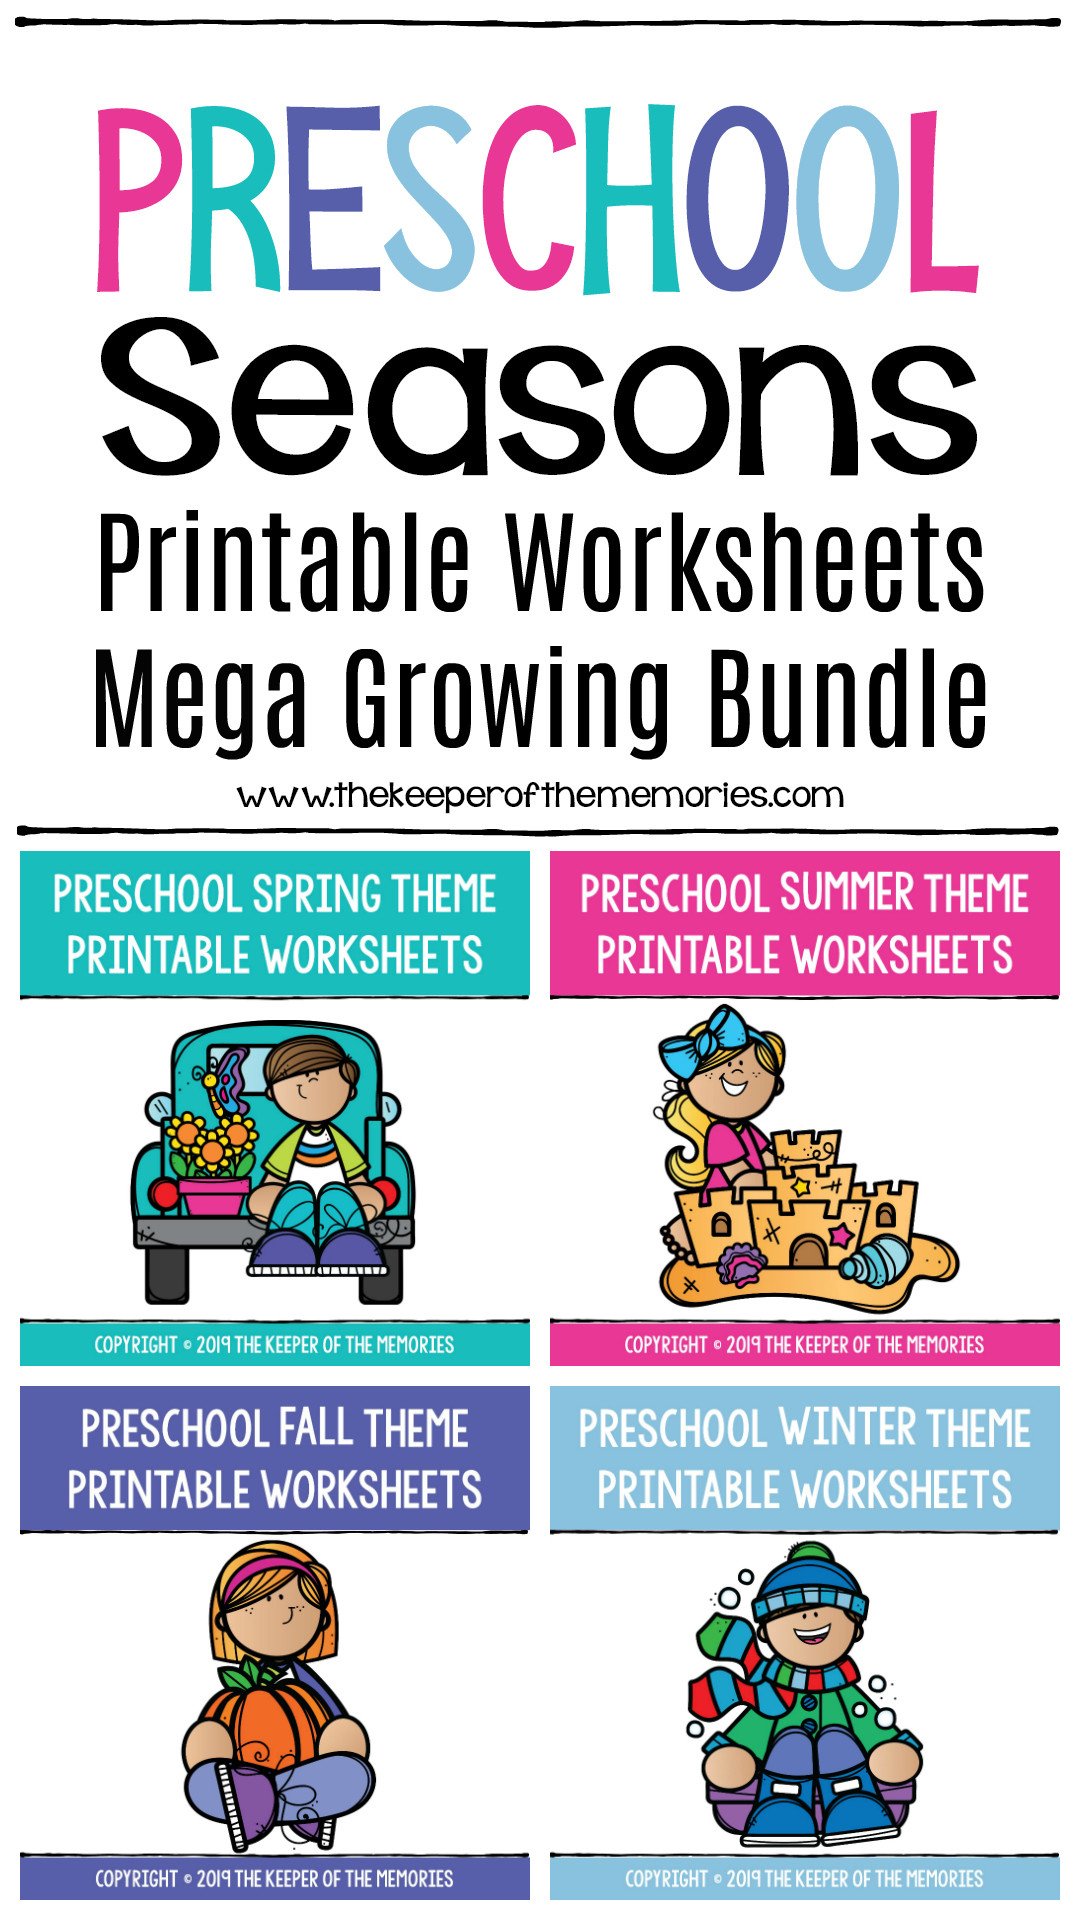 Seasons Worksheets for Preschoolers Preschool Seasons Printable Worksheets Mega Bundle the